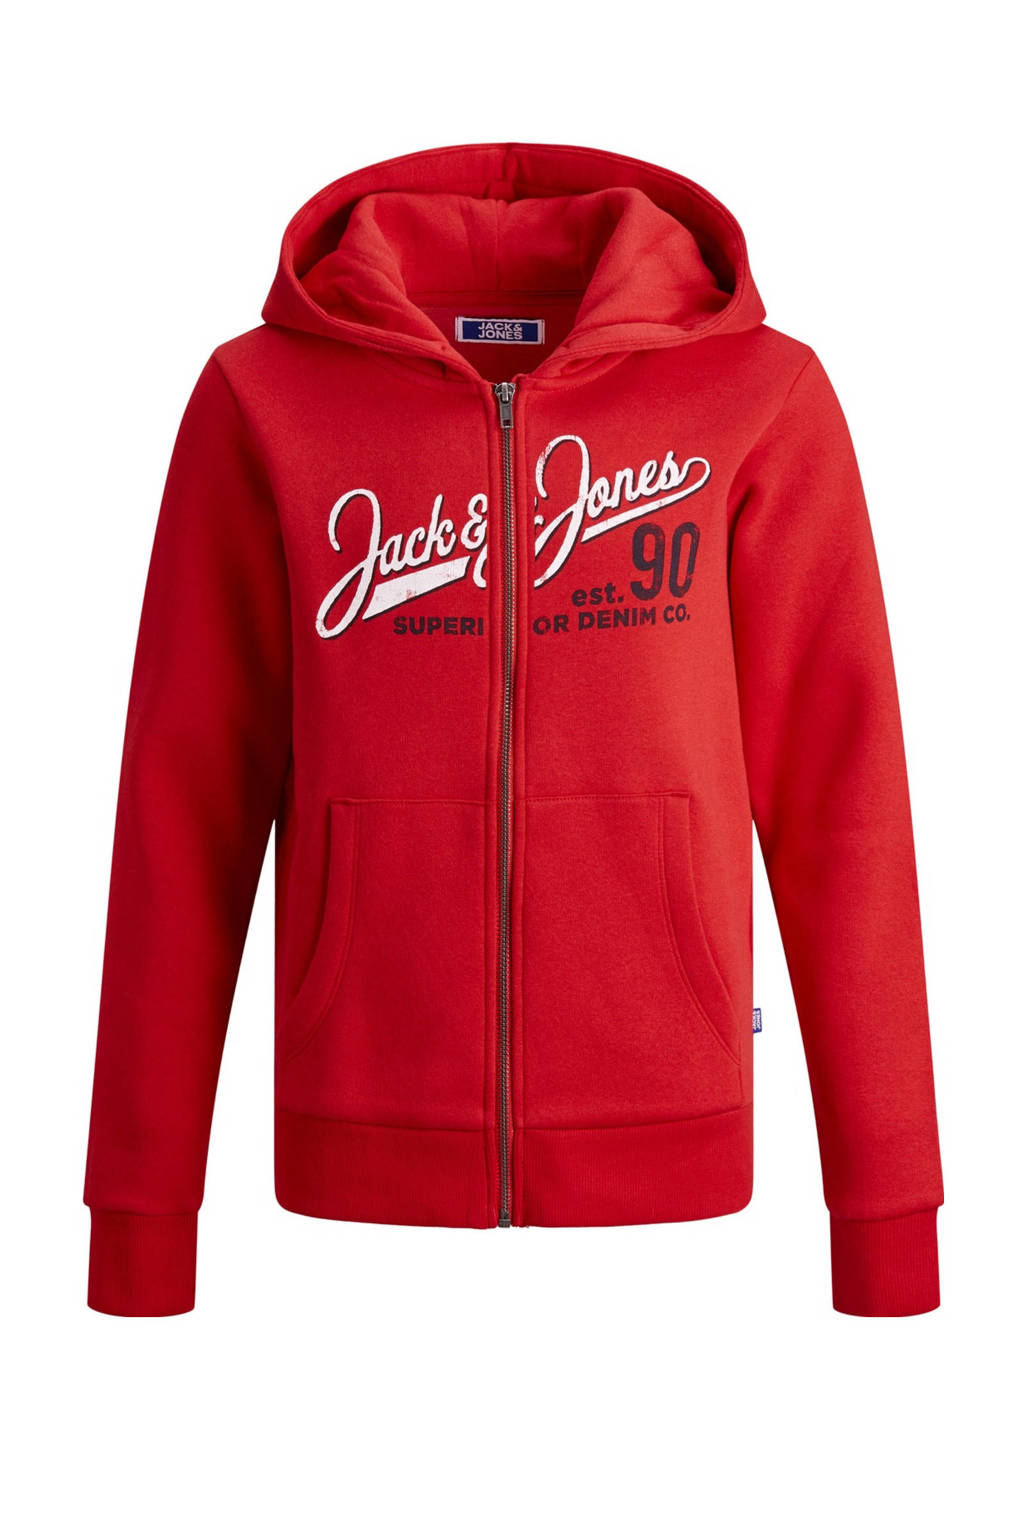 JACK & JONES JUNIOR vest met logo rood, Rood